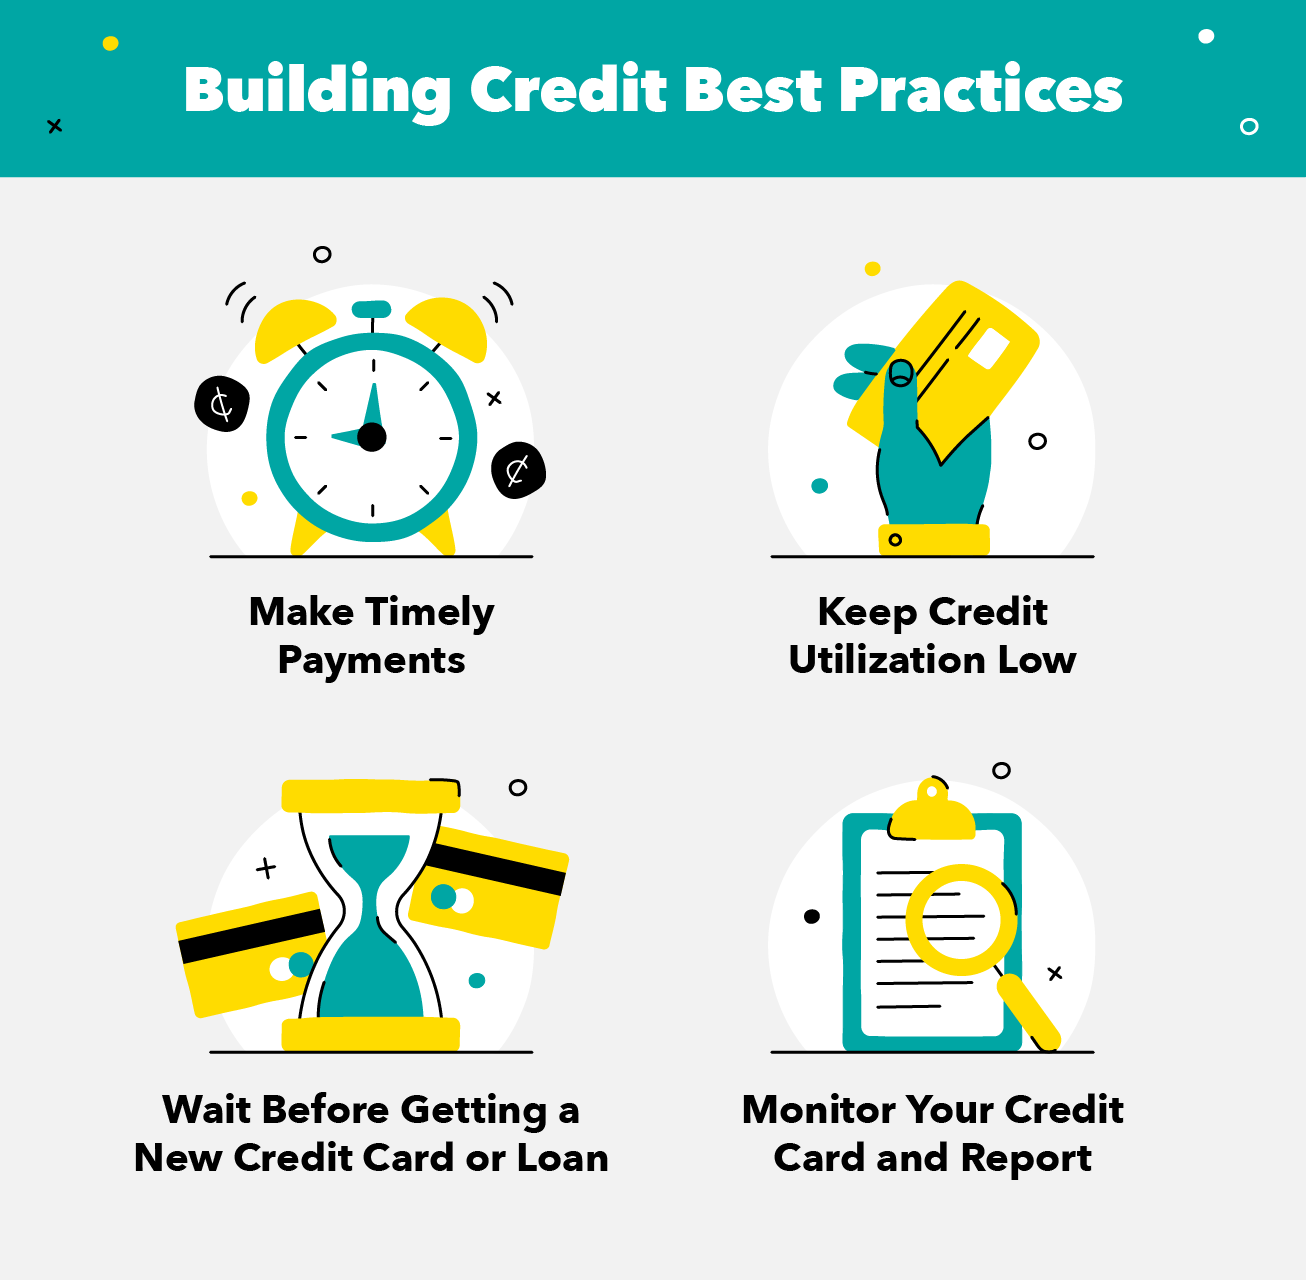 Buildig Credit Best Practices